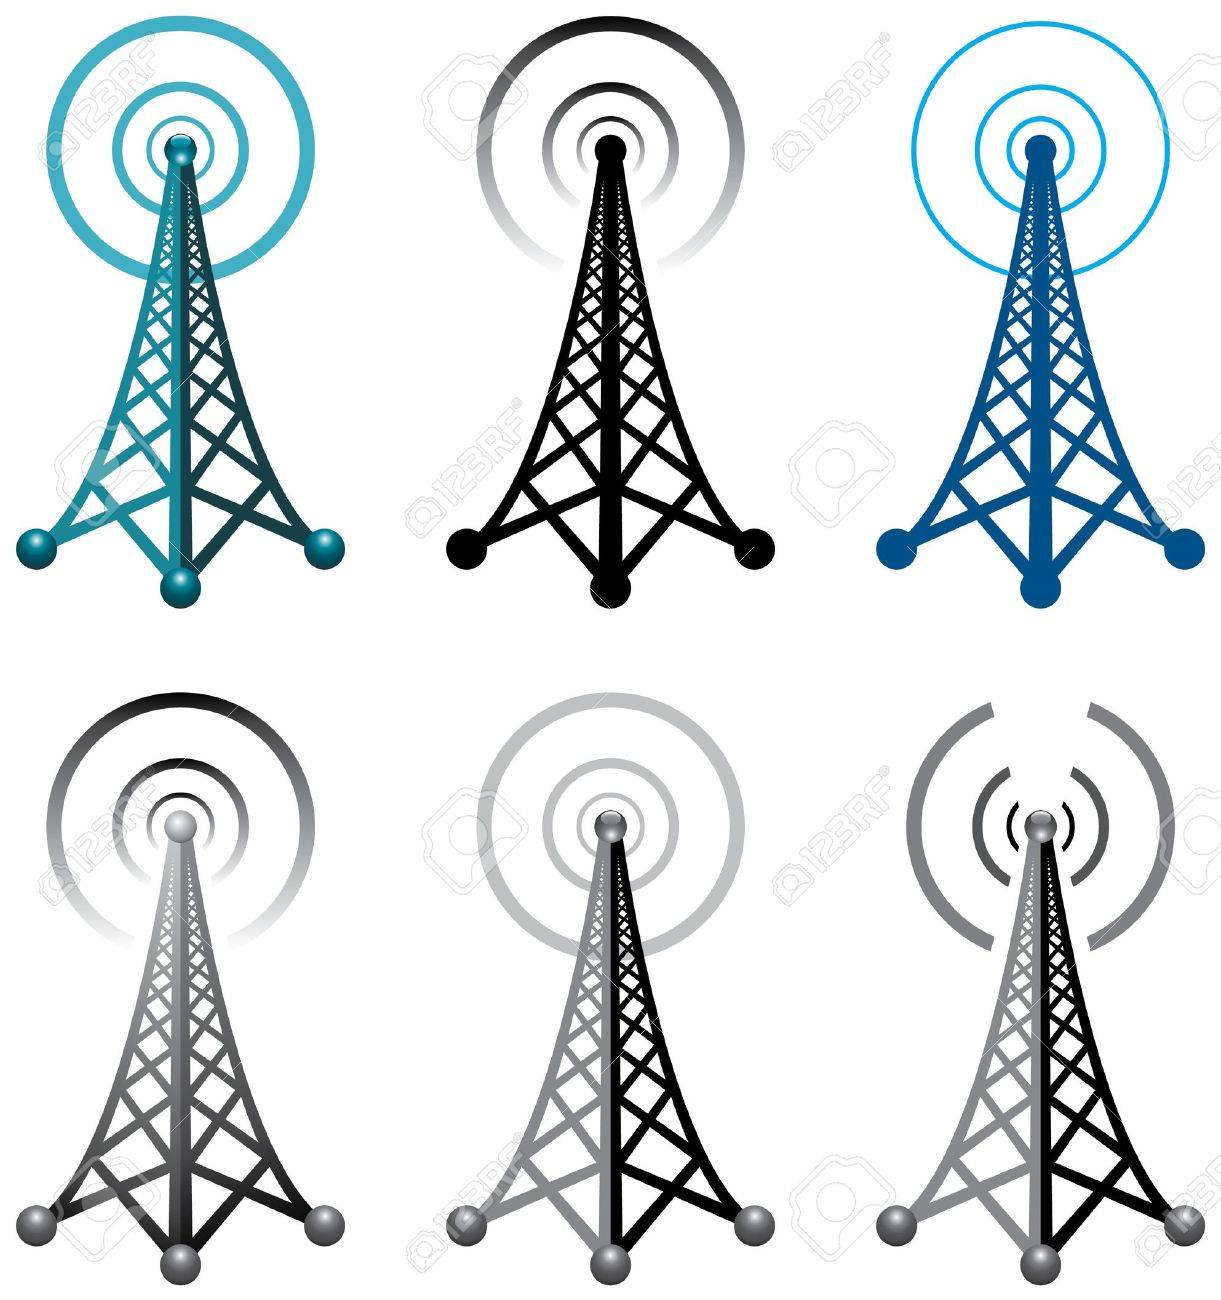 Broadcast Tower Vector Design of radio tower symbols